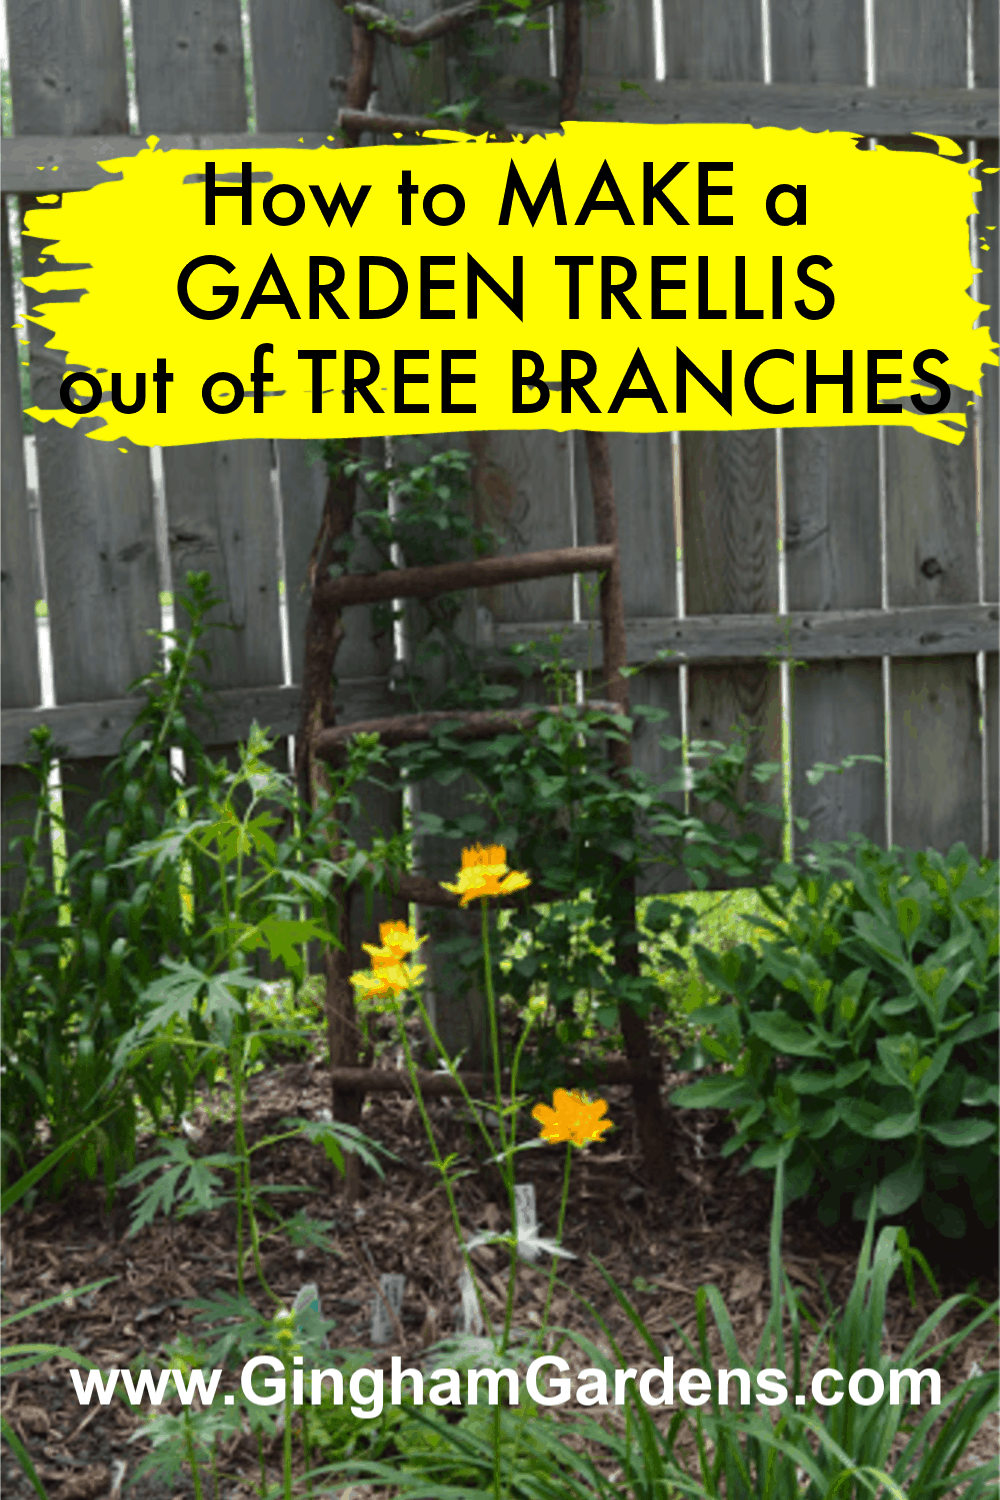 Image of garden with text overlay - How to Make a Garden Trellis out of Tree Branches